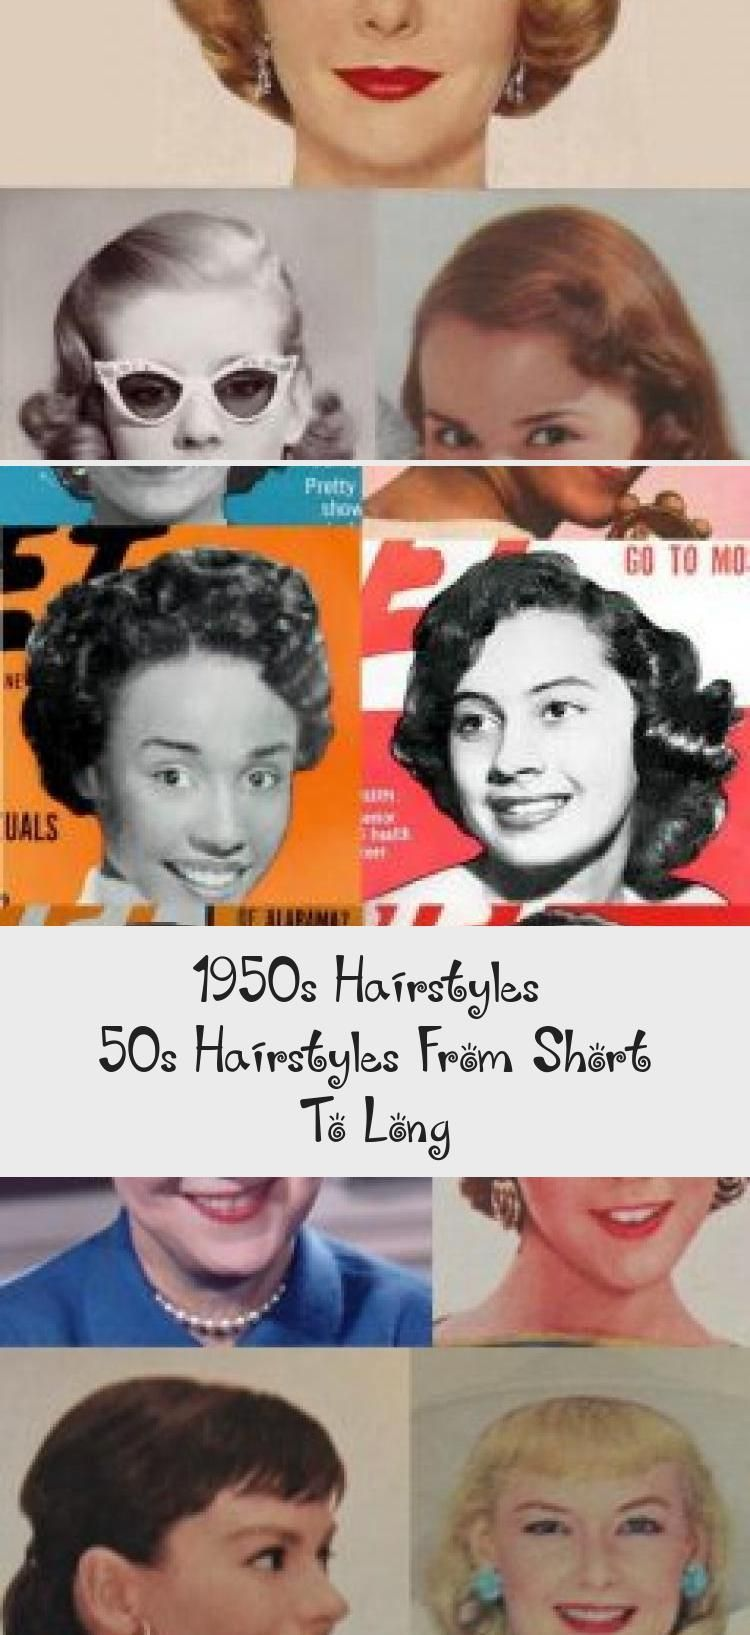 1950s Hairstyles 50s Hairstyles From Short To Long Hairstyle A2vids 1950s Hairstyles 1950s Hair In 2020 1950s Hairstyles 50s Hairstyles Long Hair Styles